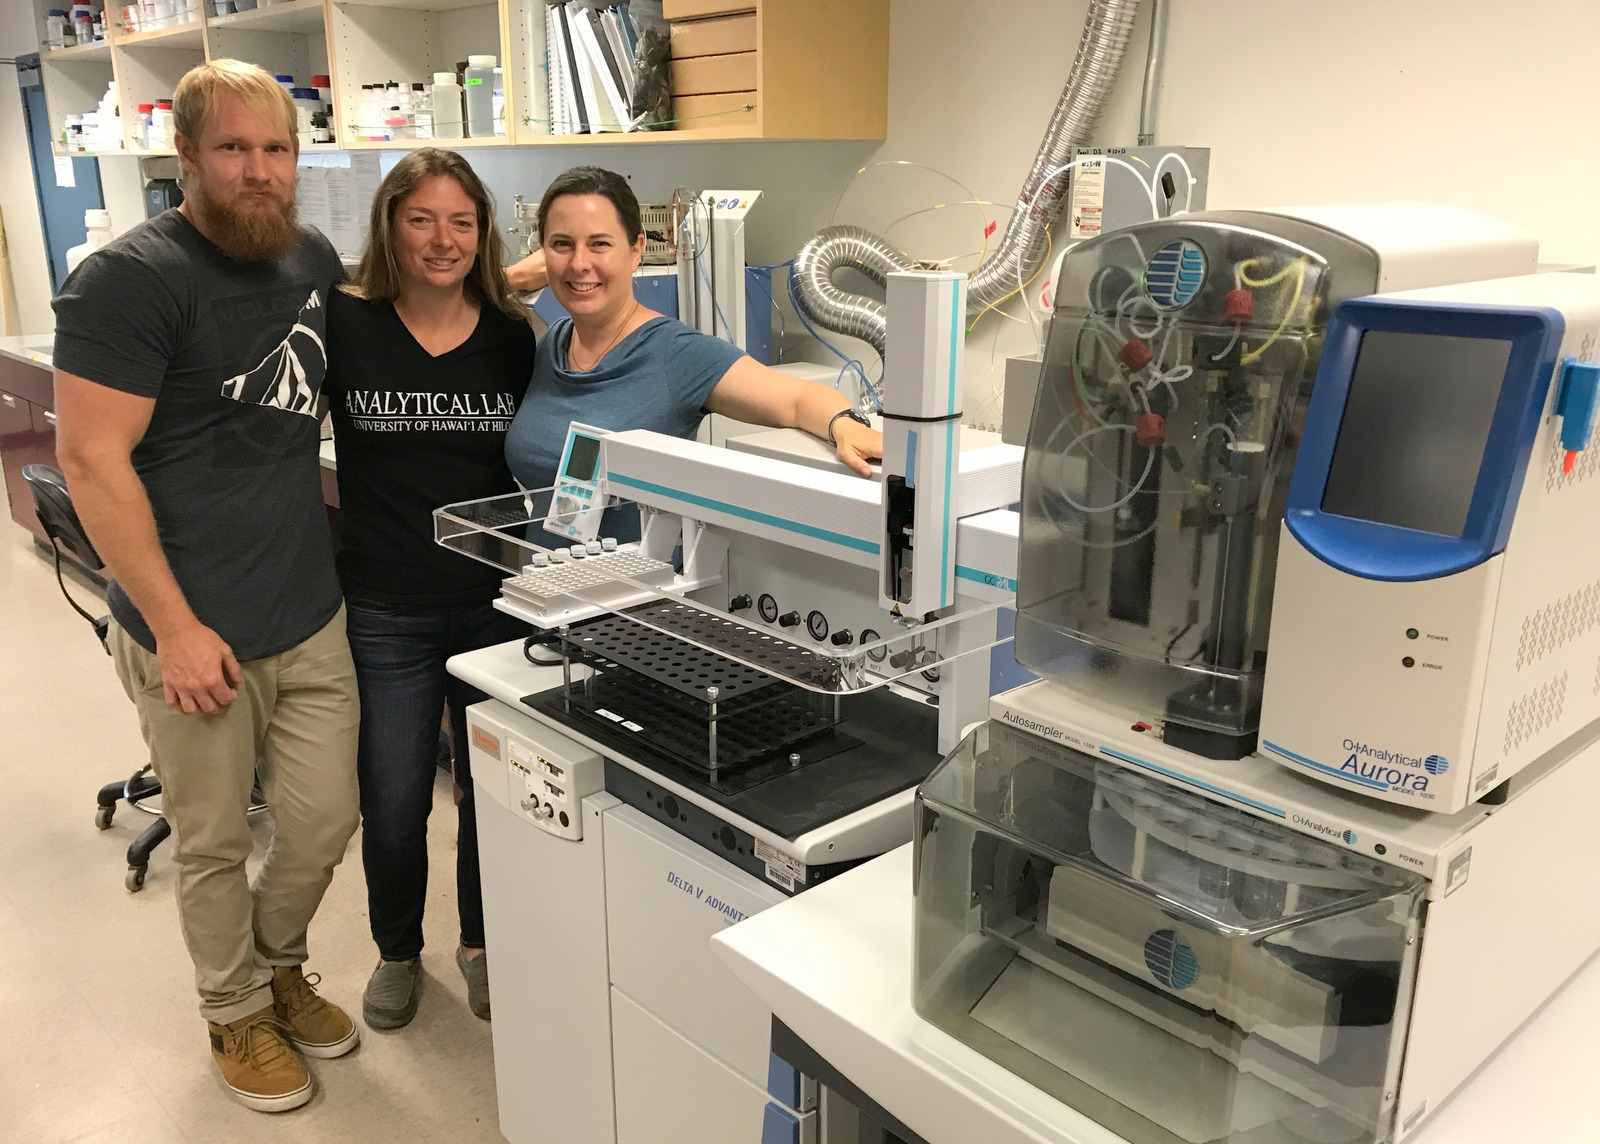 NSF grant funds new Isotope Ratio Mass Spectrometer for UH Hilo Analytical Lab